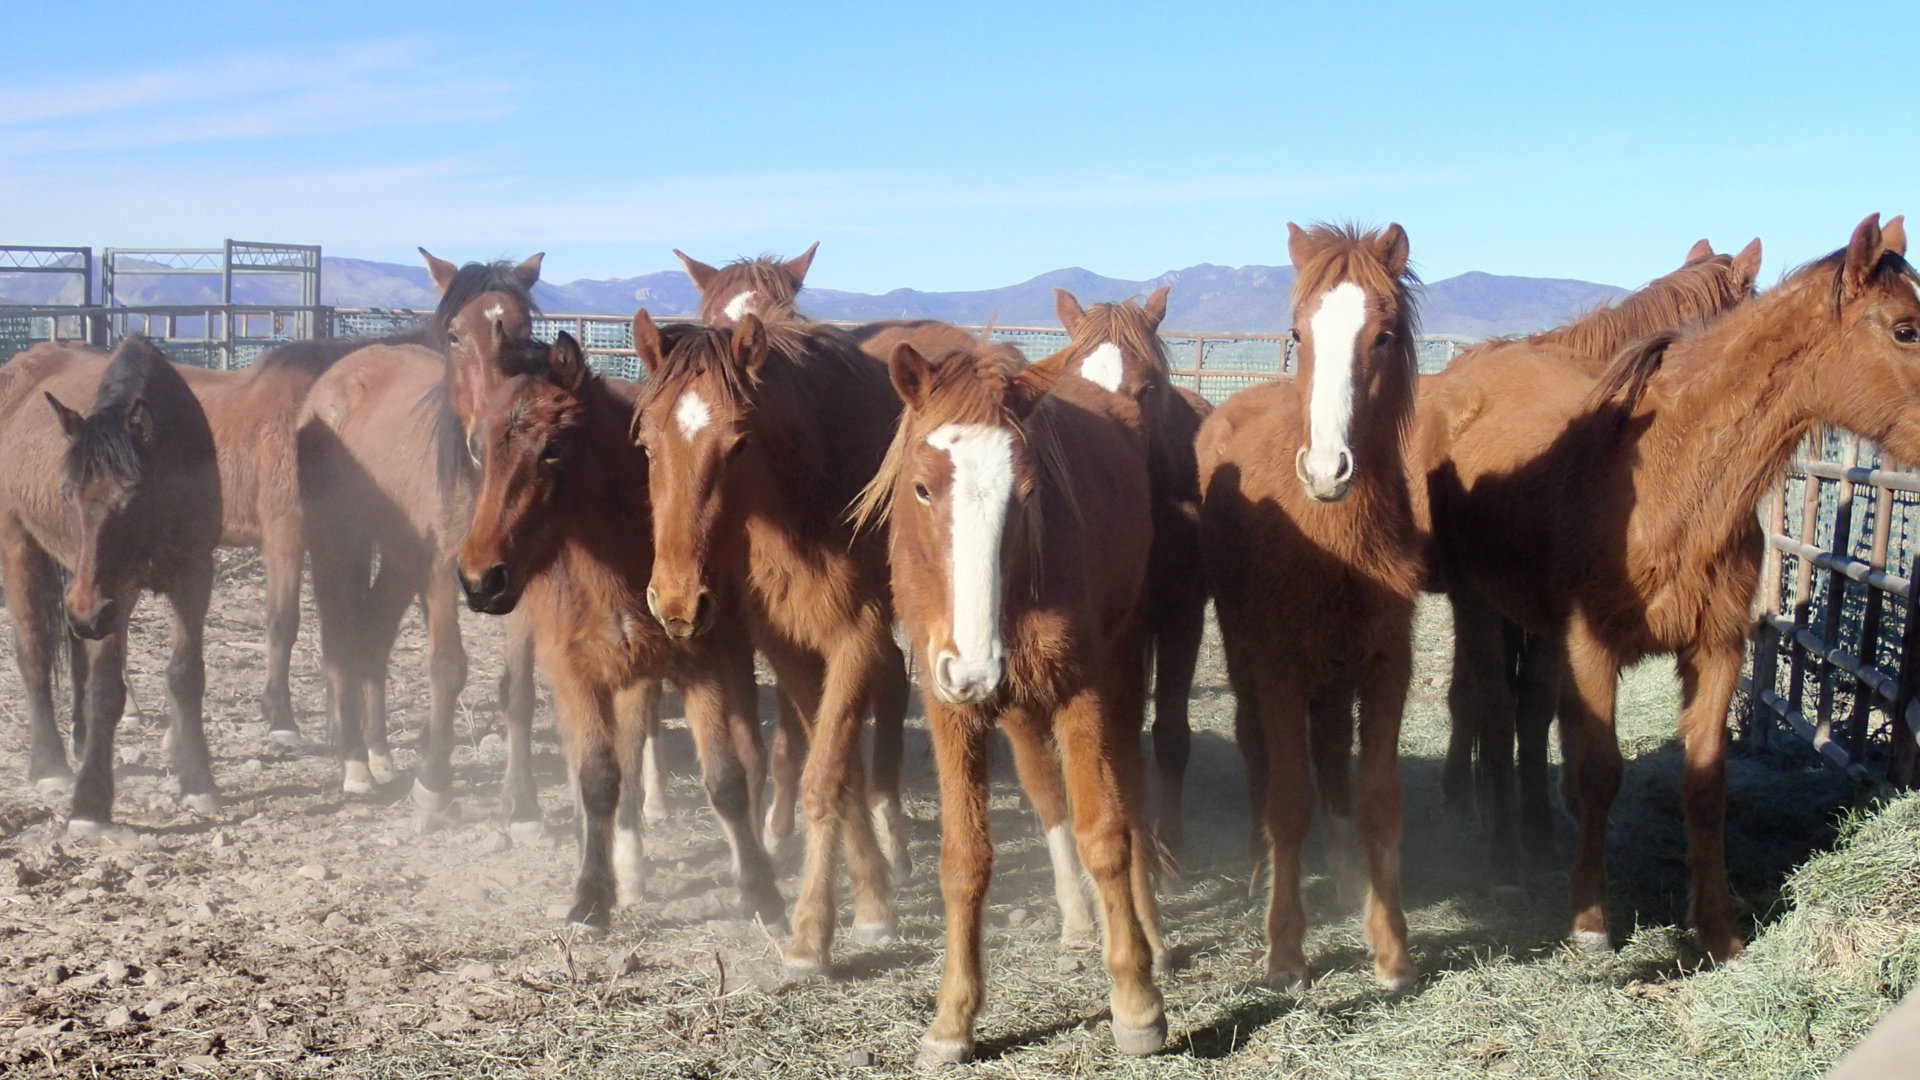 Recently gathered horses in a pen.